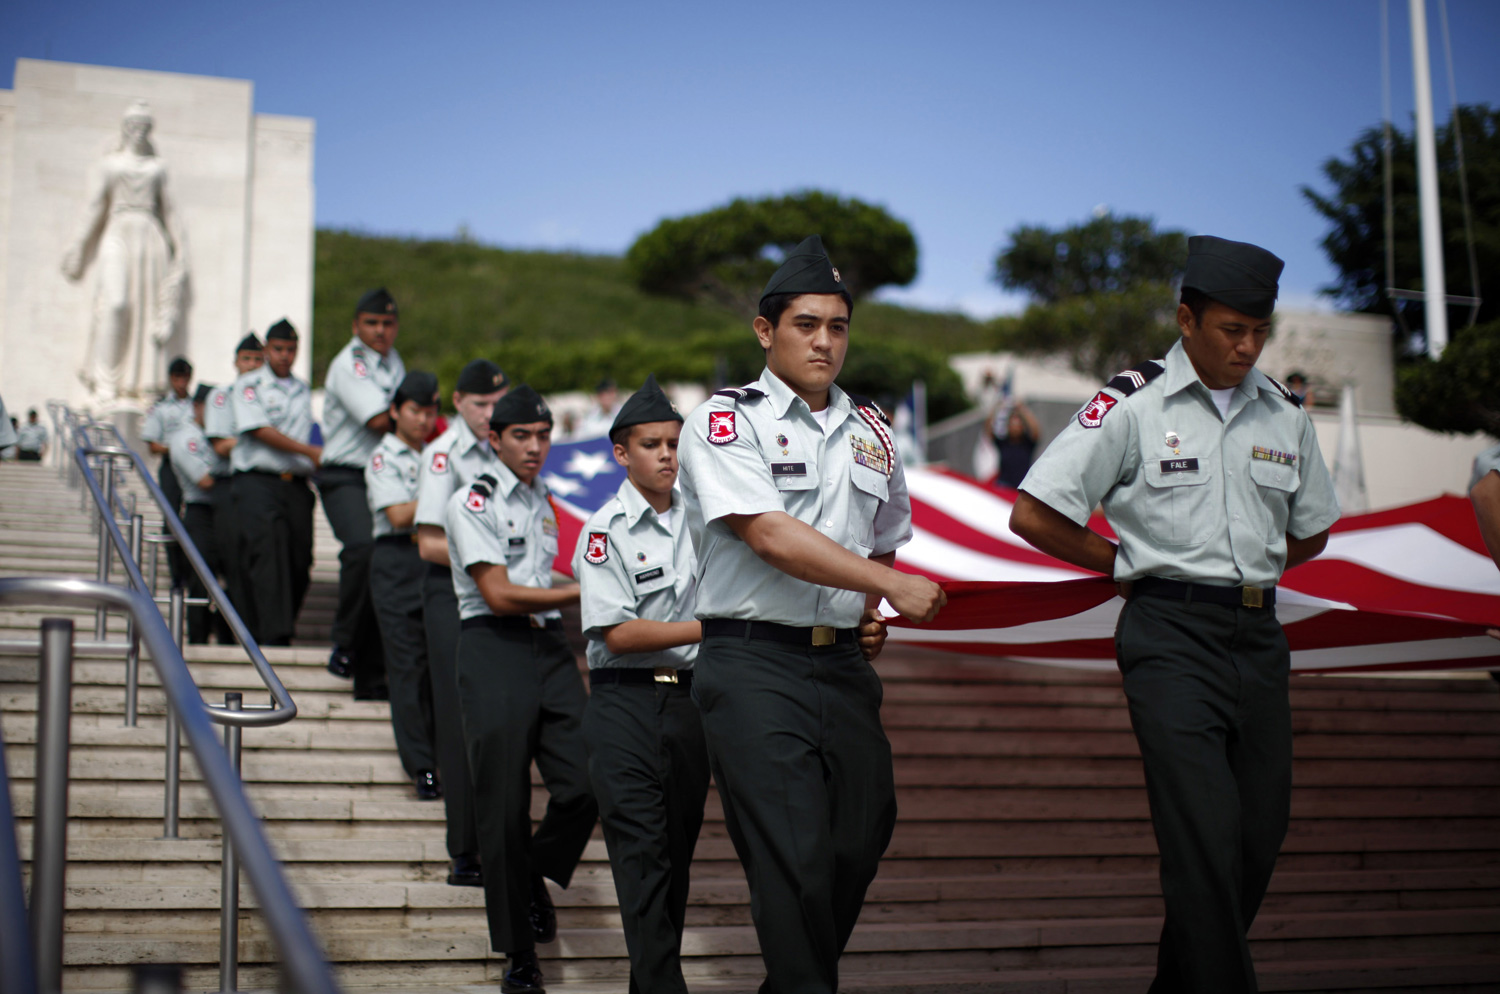 Members-of-the-Kahuku-High-School-JROTC-Cadets-in-Honolulu-Hawaii-ReutersJason-Reed